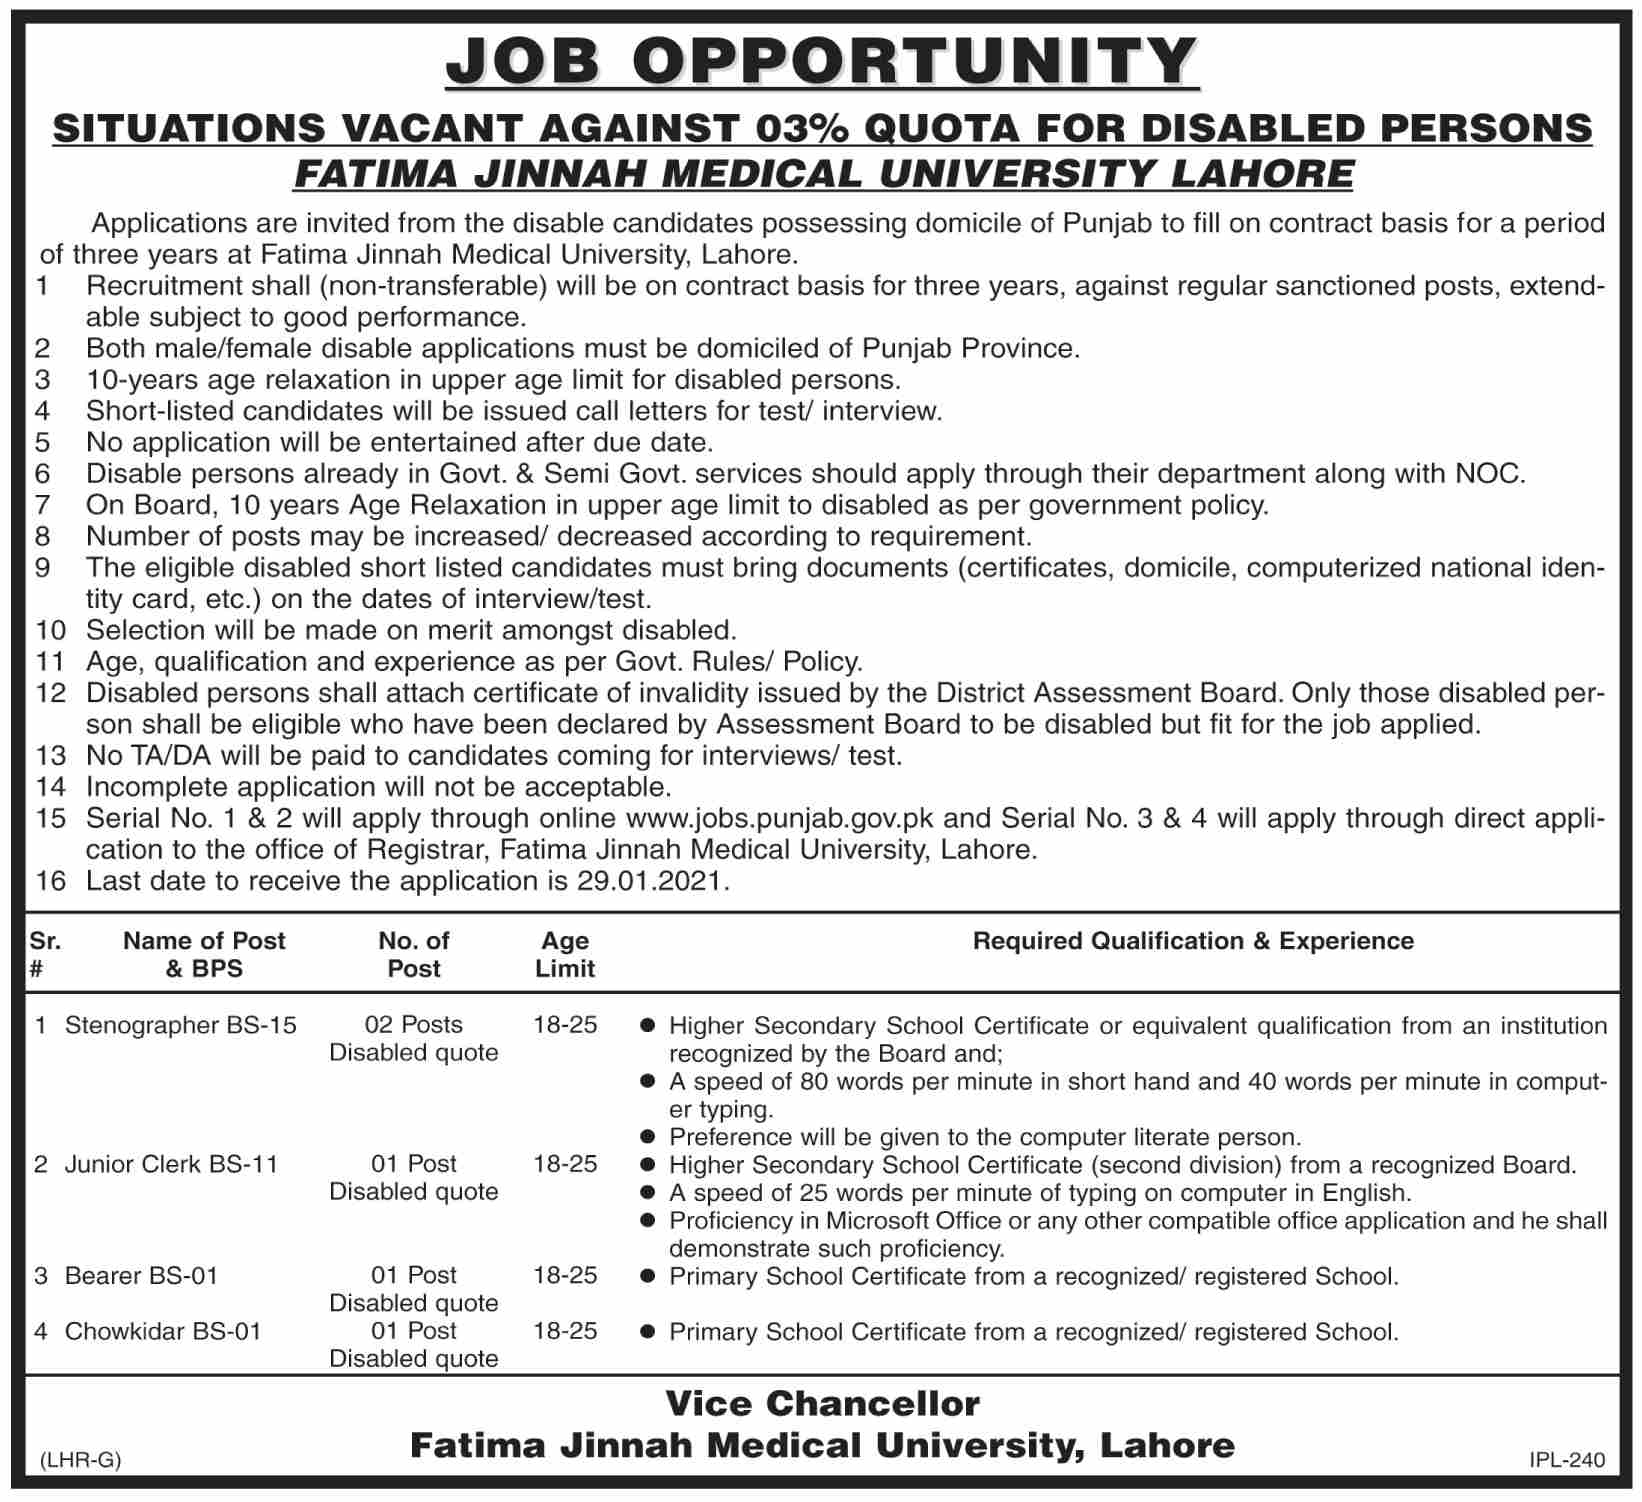 Fatima Jinnah Medical University Jobs 2021 - Stenographer Jobs 2021 - Junior Clerk Jobs 2021 - Chowkidar Jobs 2021 - Jobs in Lahore